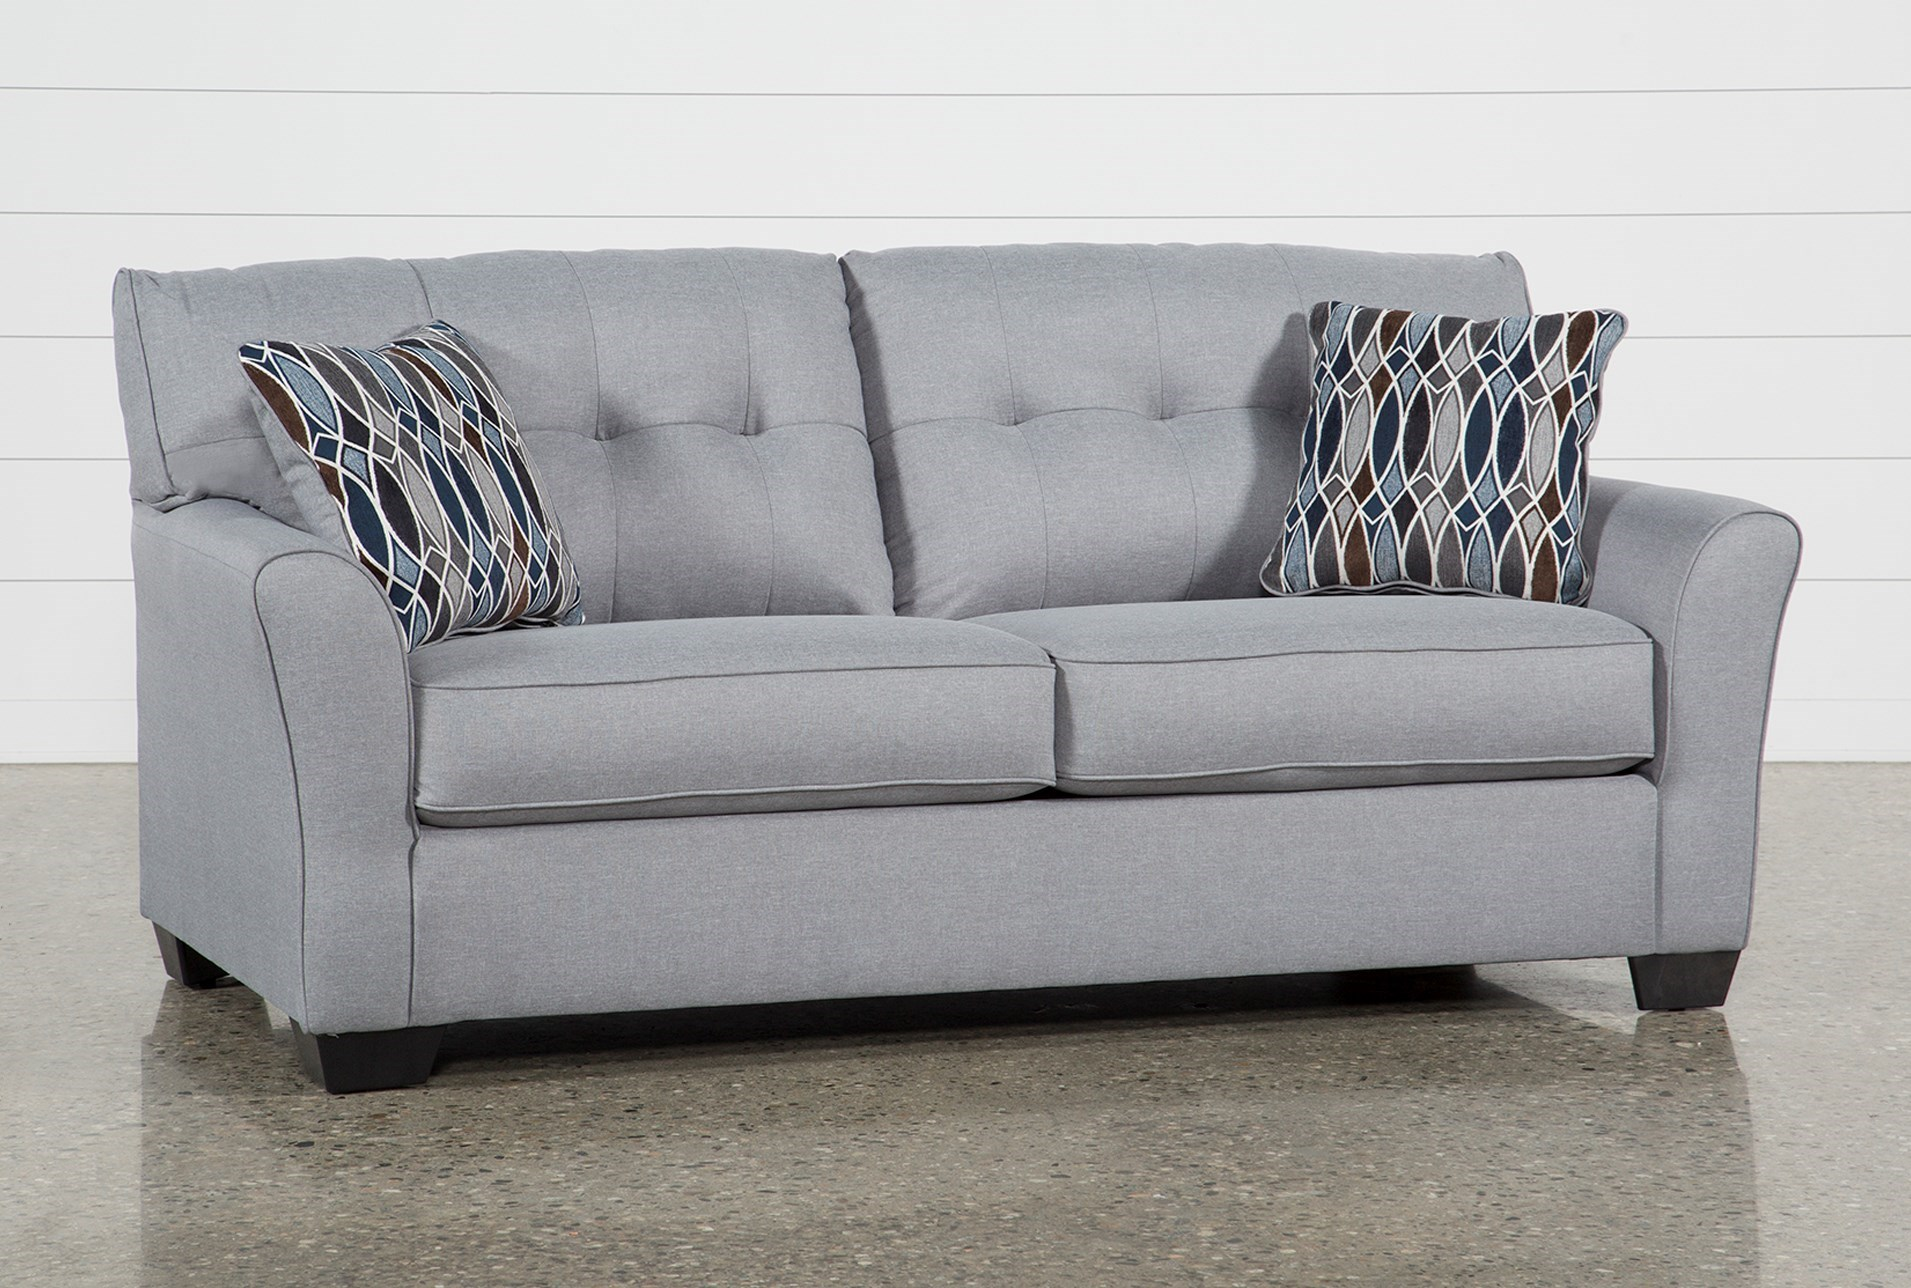 Sofa Sleepers Full Size Simmons Upholstery 7251 Full Size